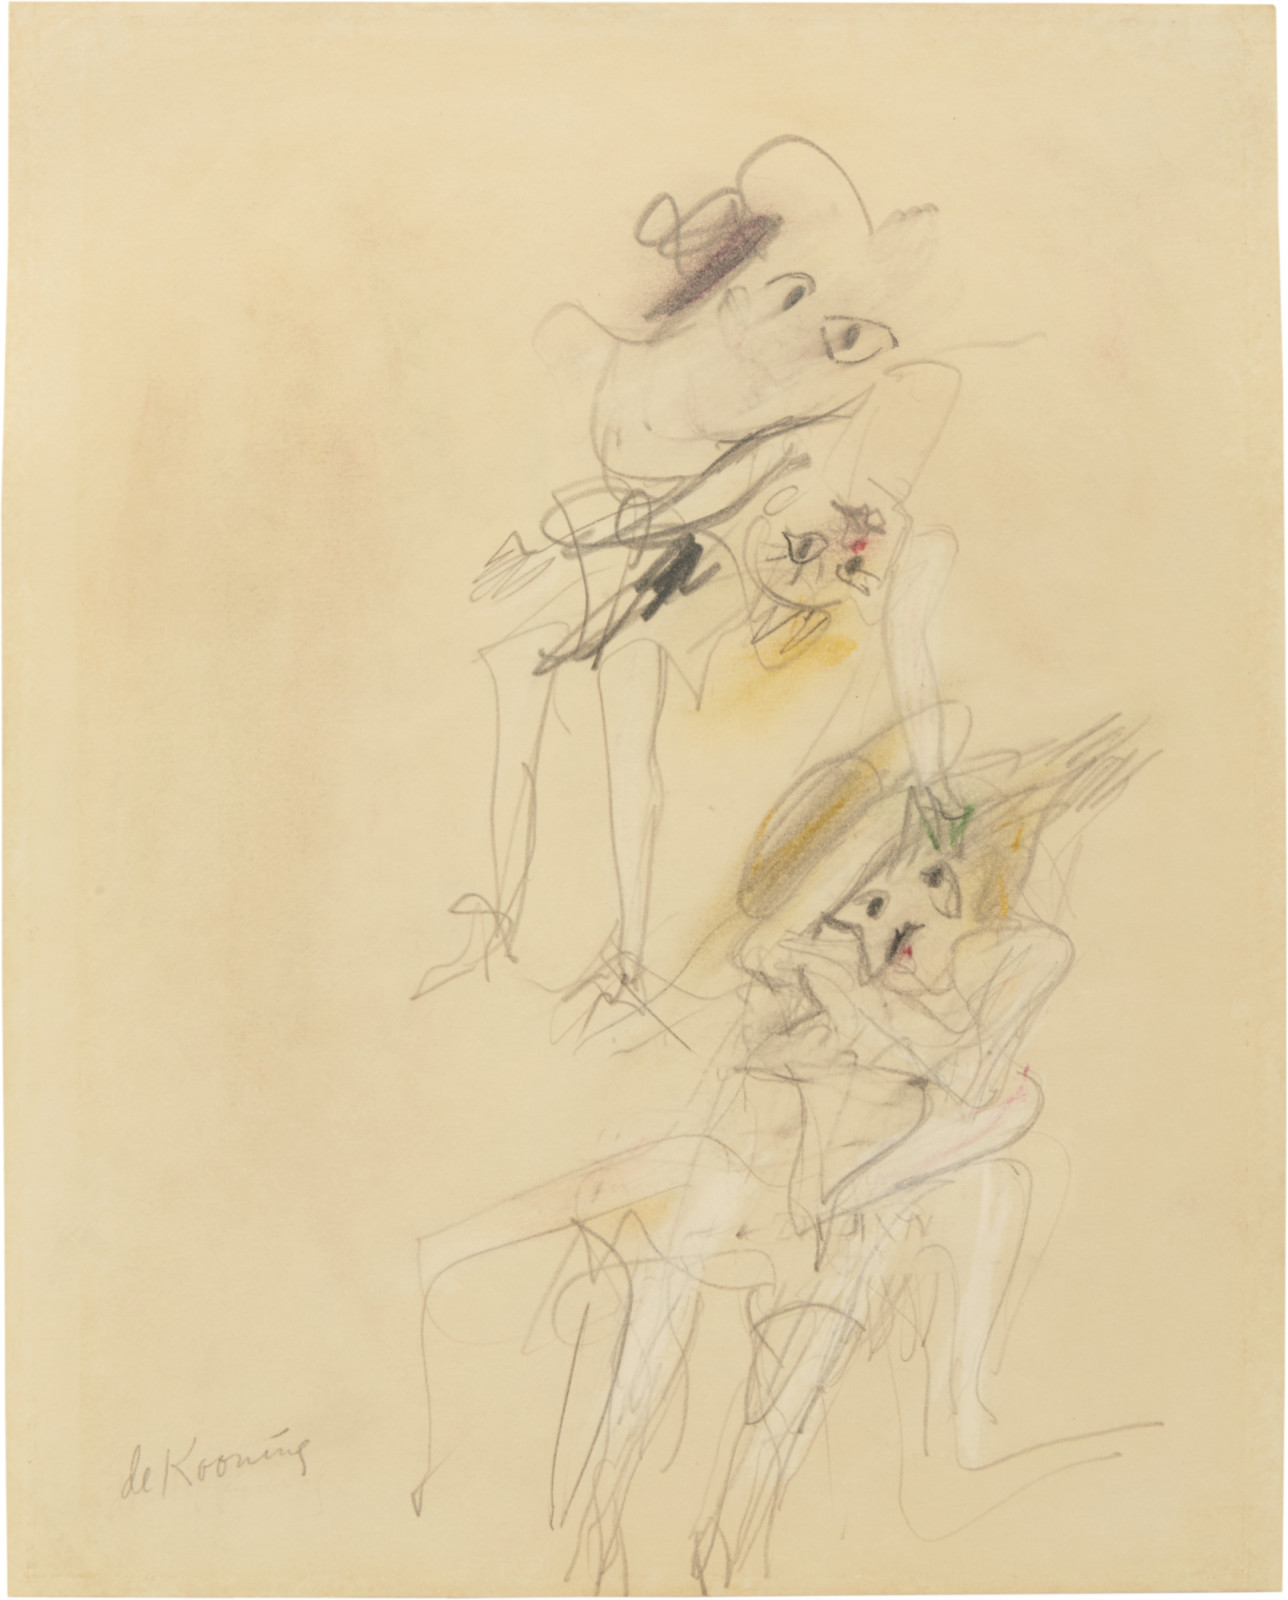 Drawing, dated 1966